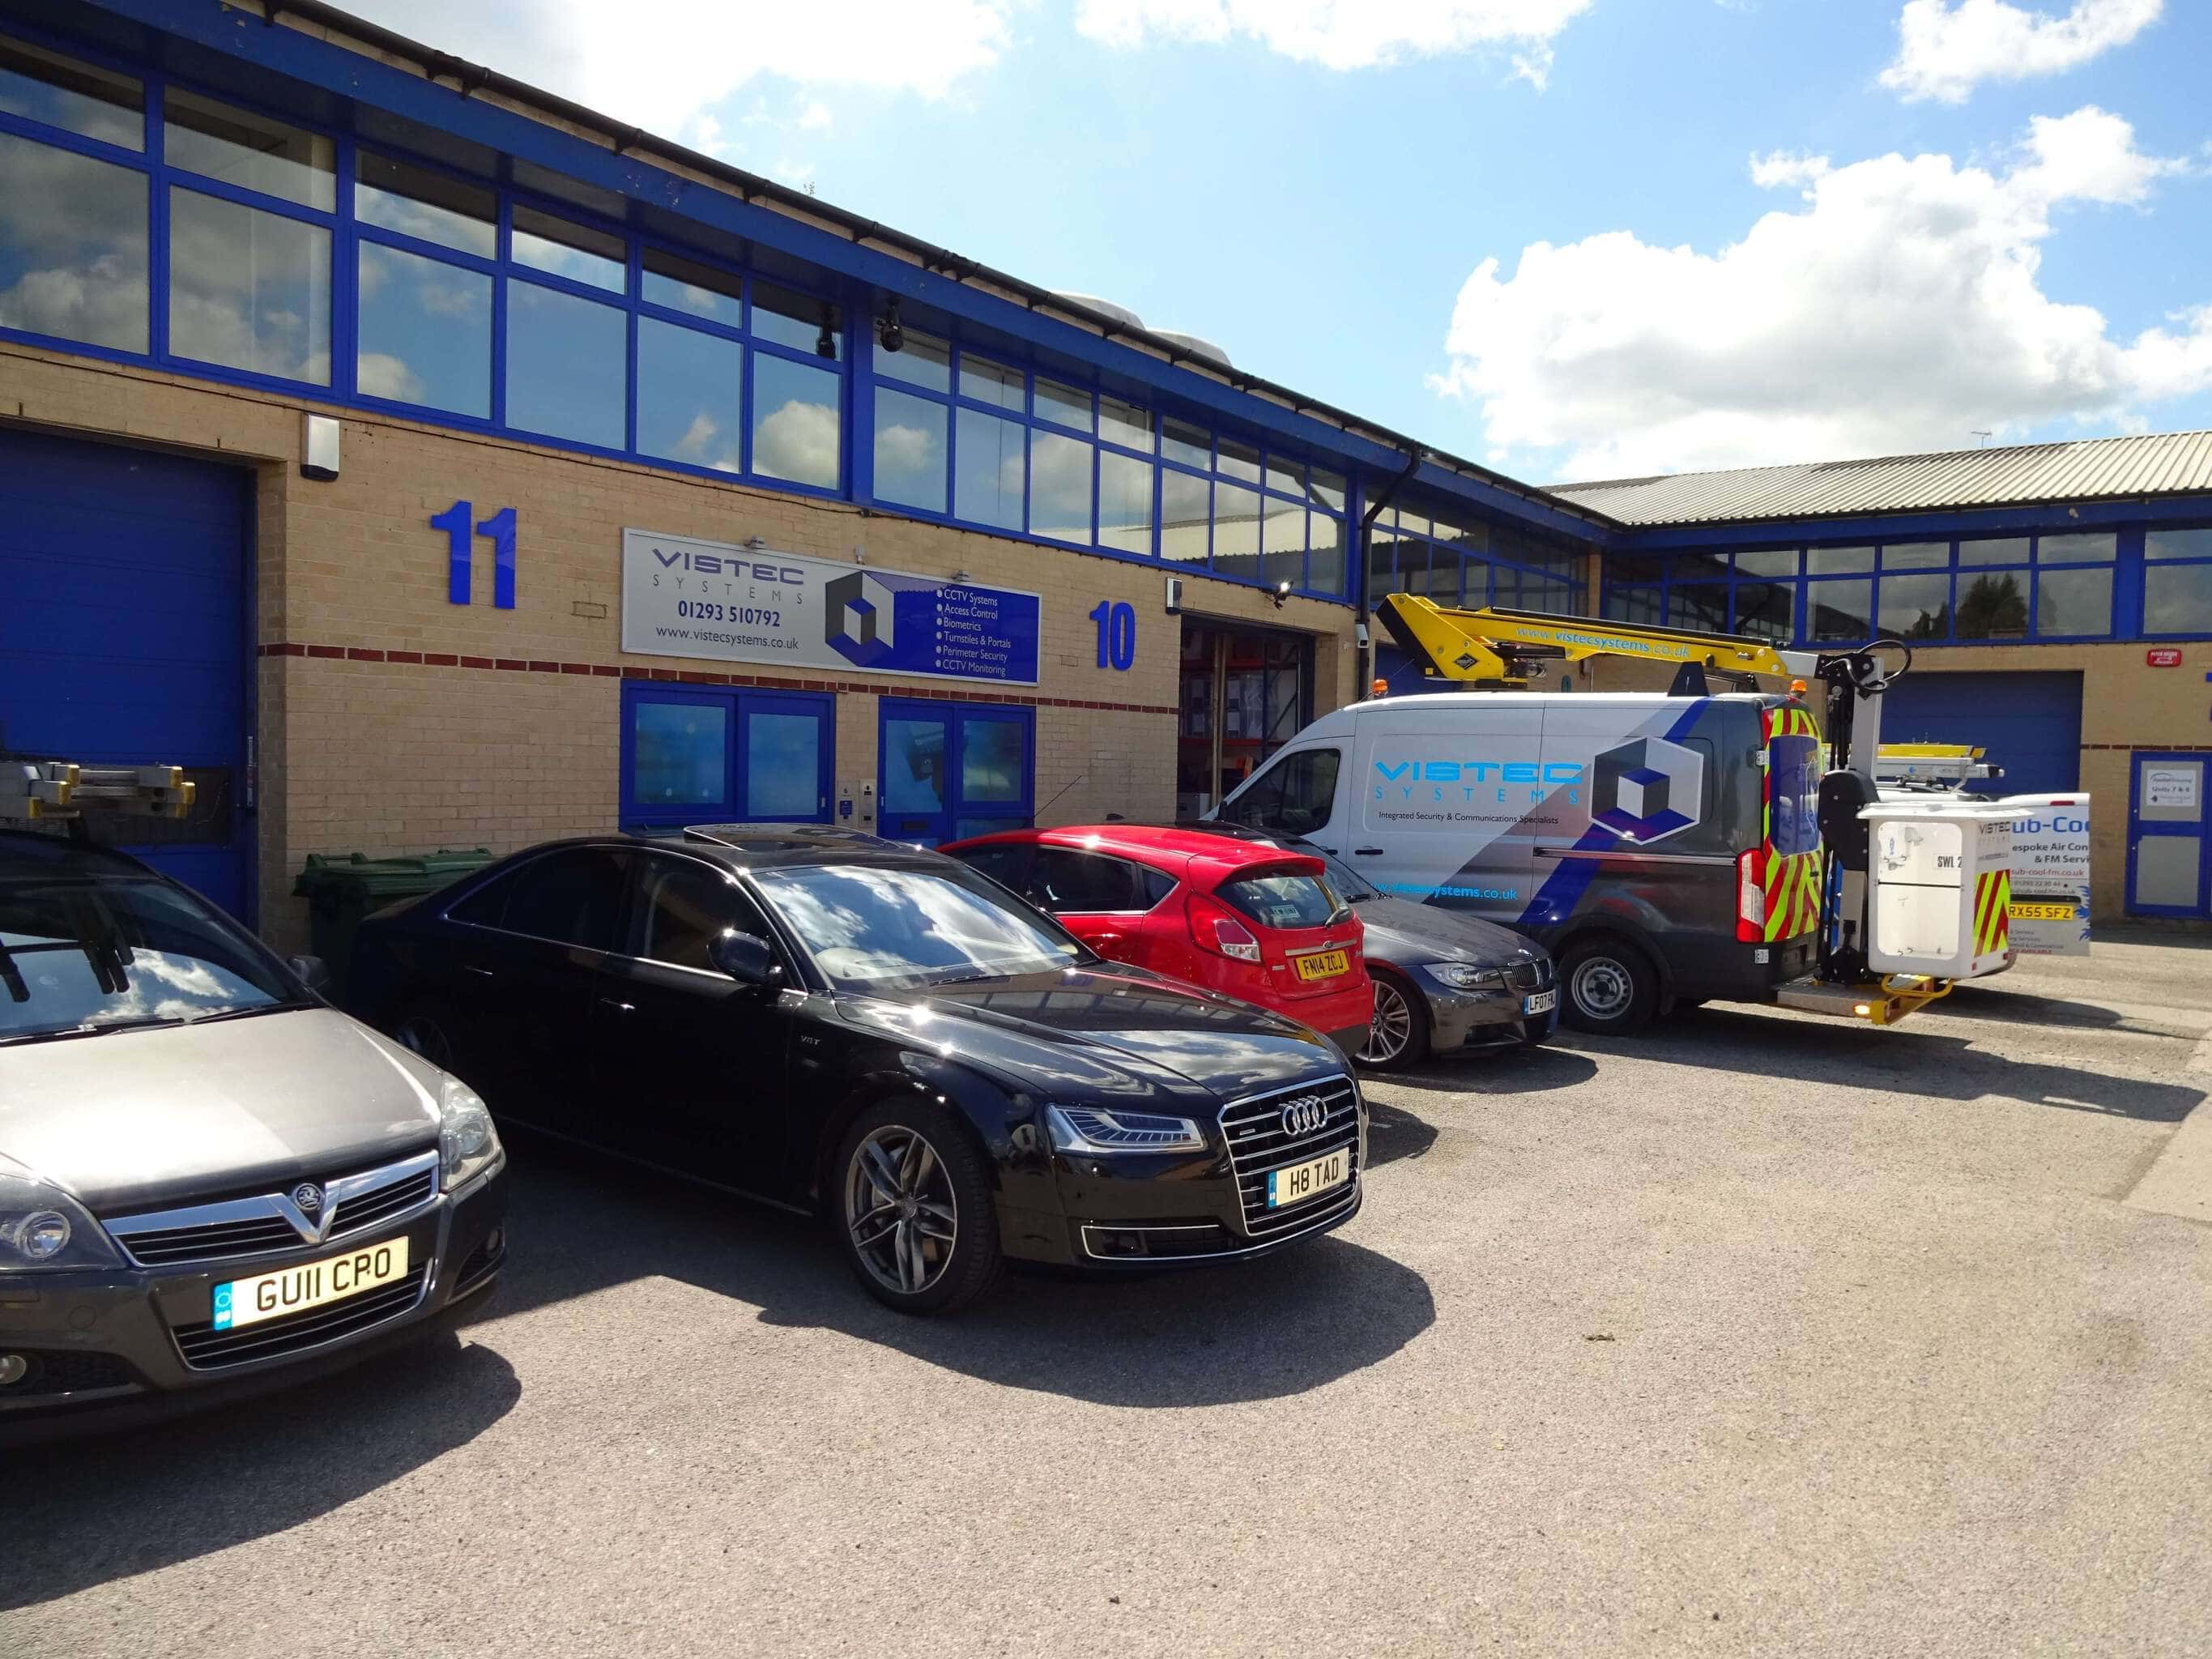 Commercial Air Conditioning West Sussex Project